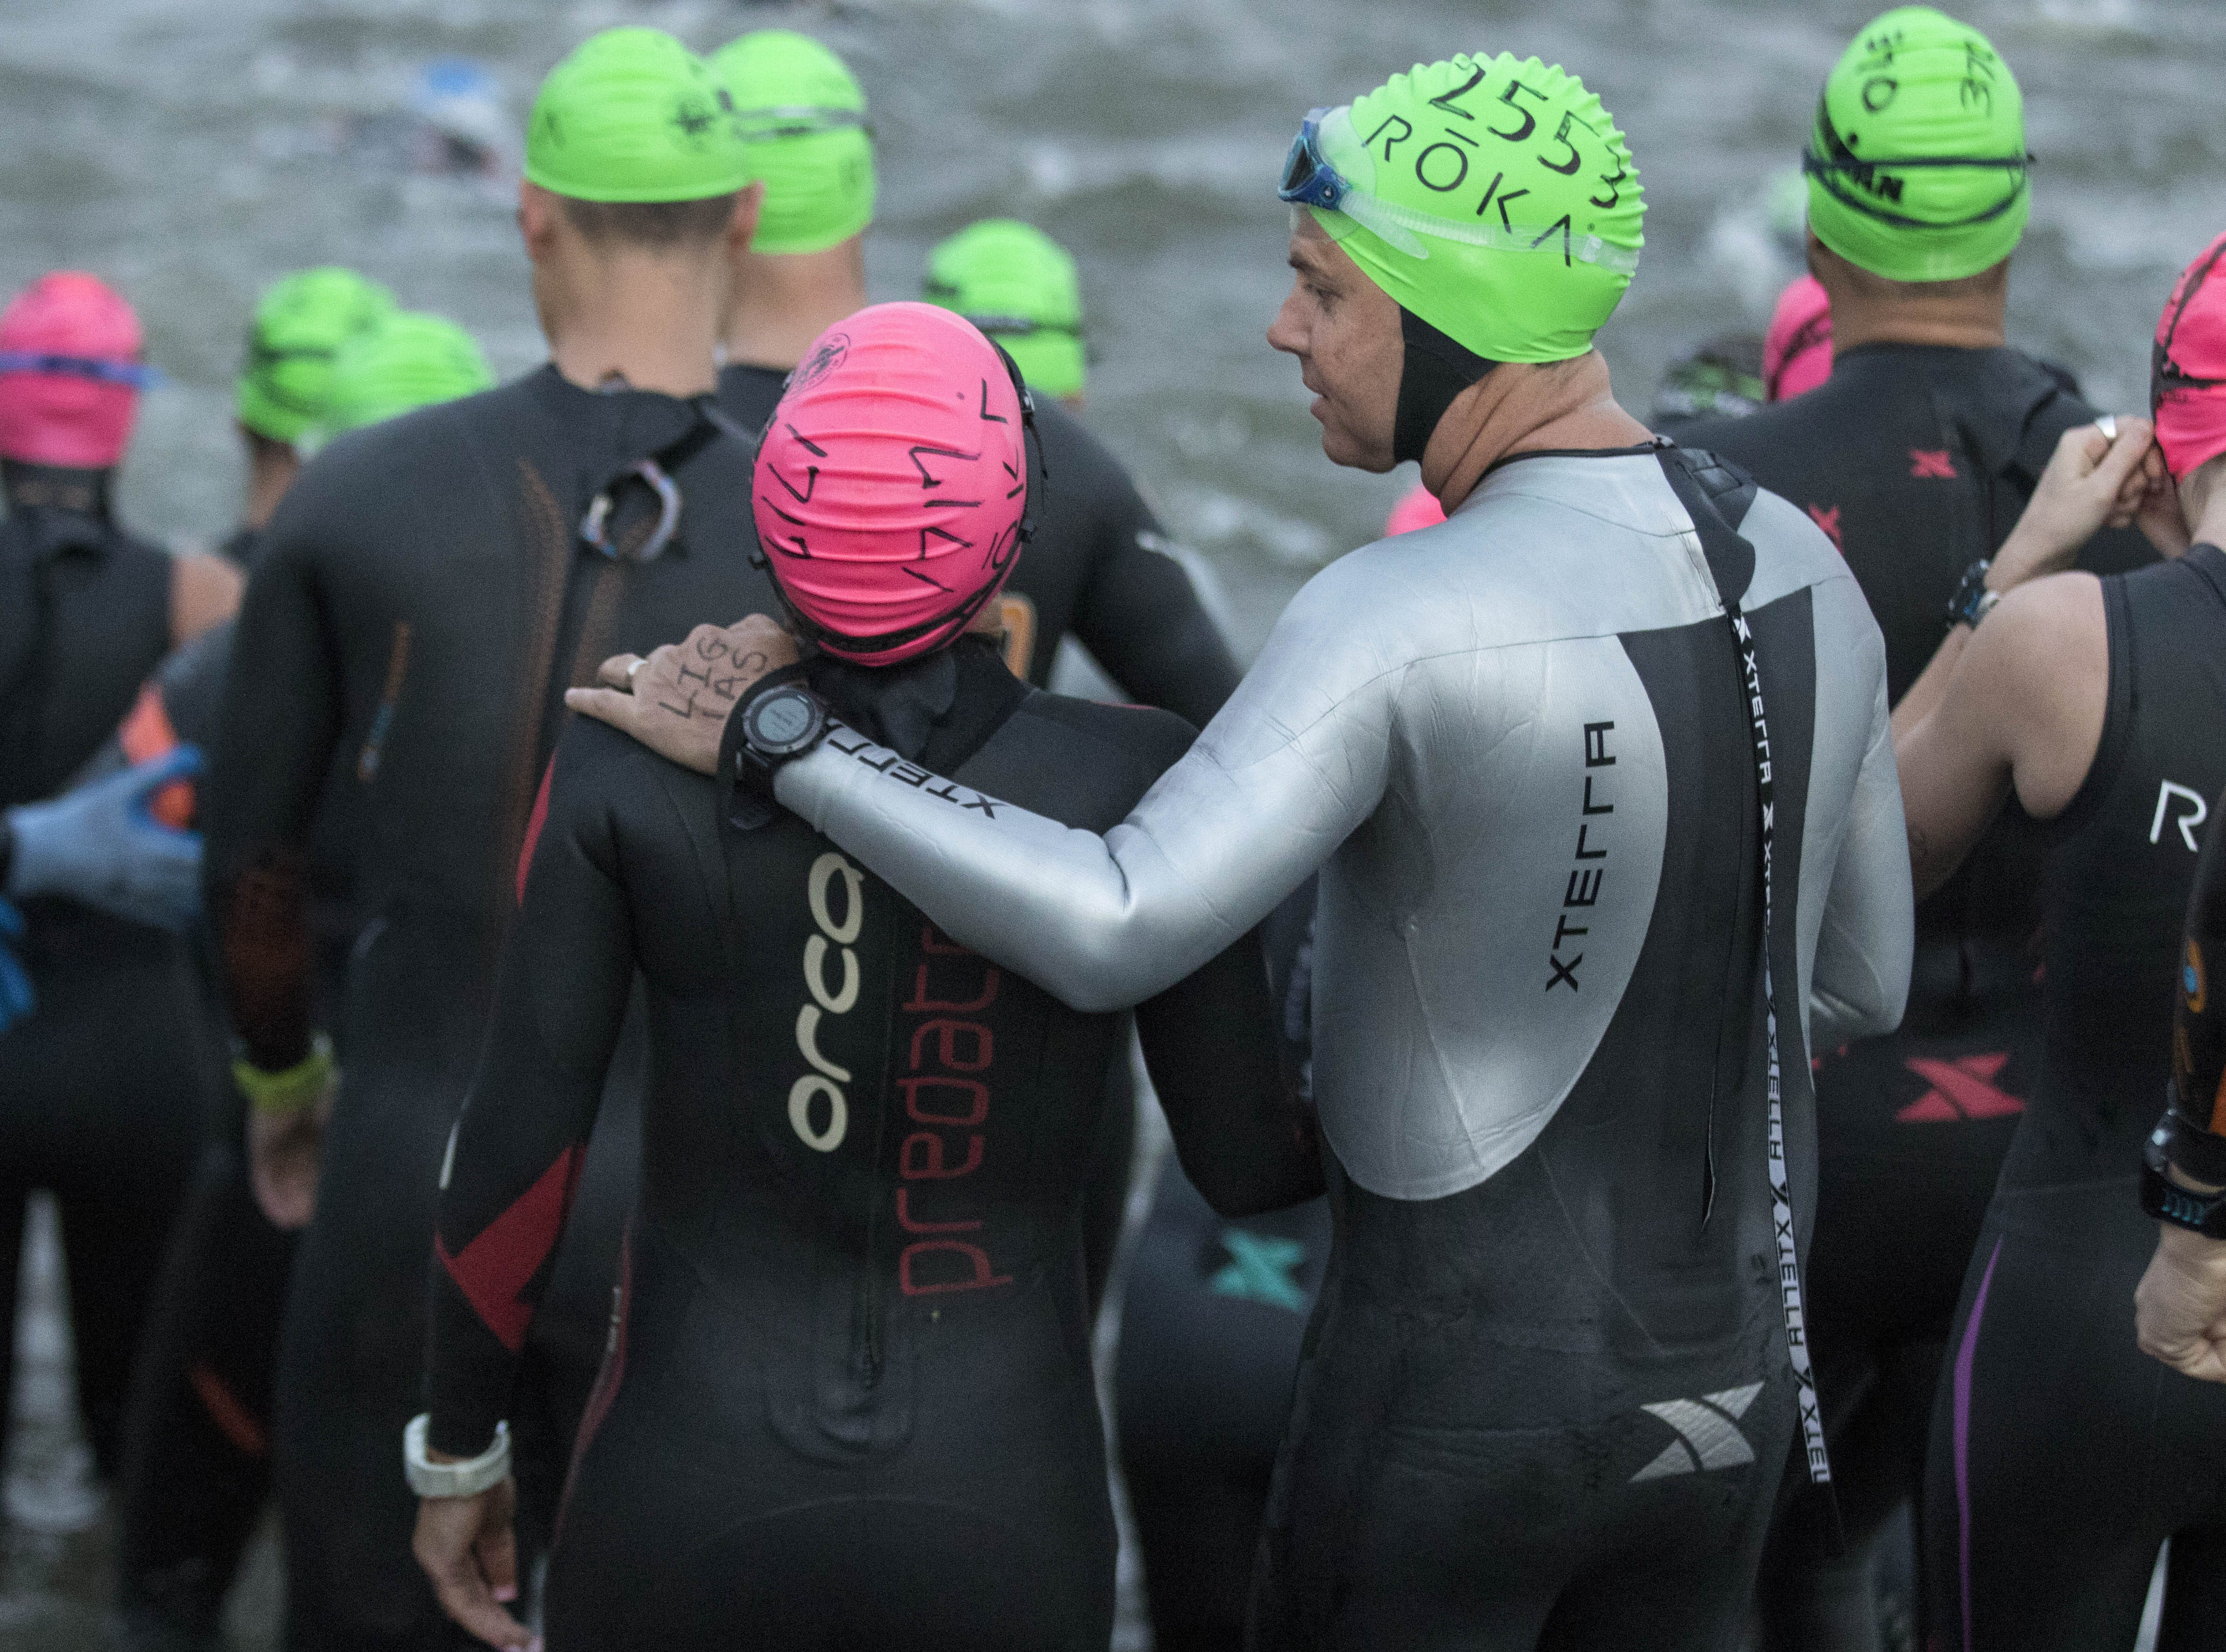 An Ironman competitor gets last-minute encouragement as they start their swim during the Tempe Ironman at Tempe Town Lake Nov.18, 2018.